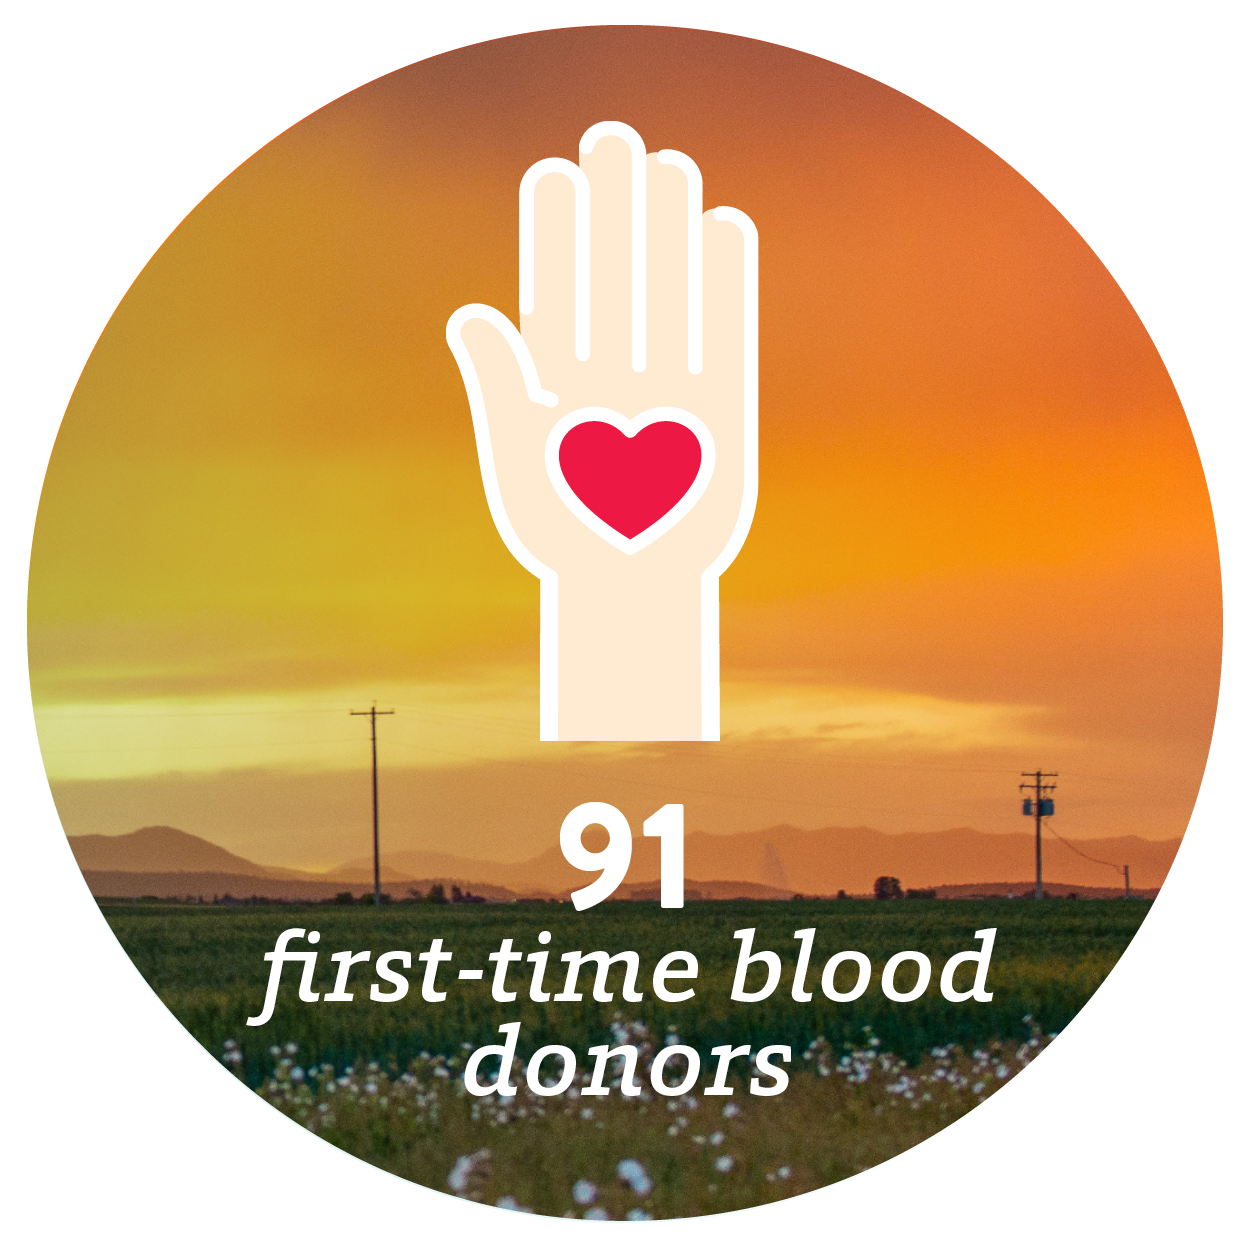 91 first-time blood donors